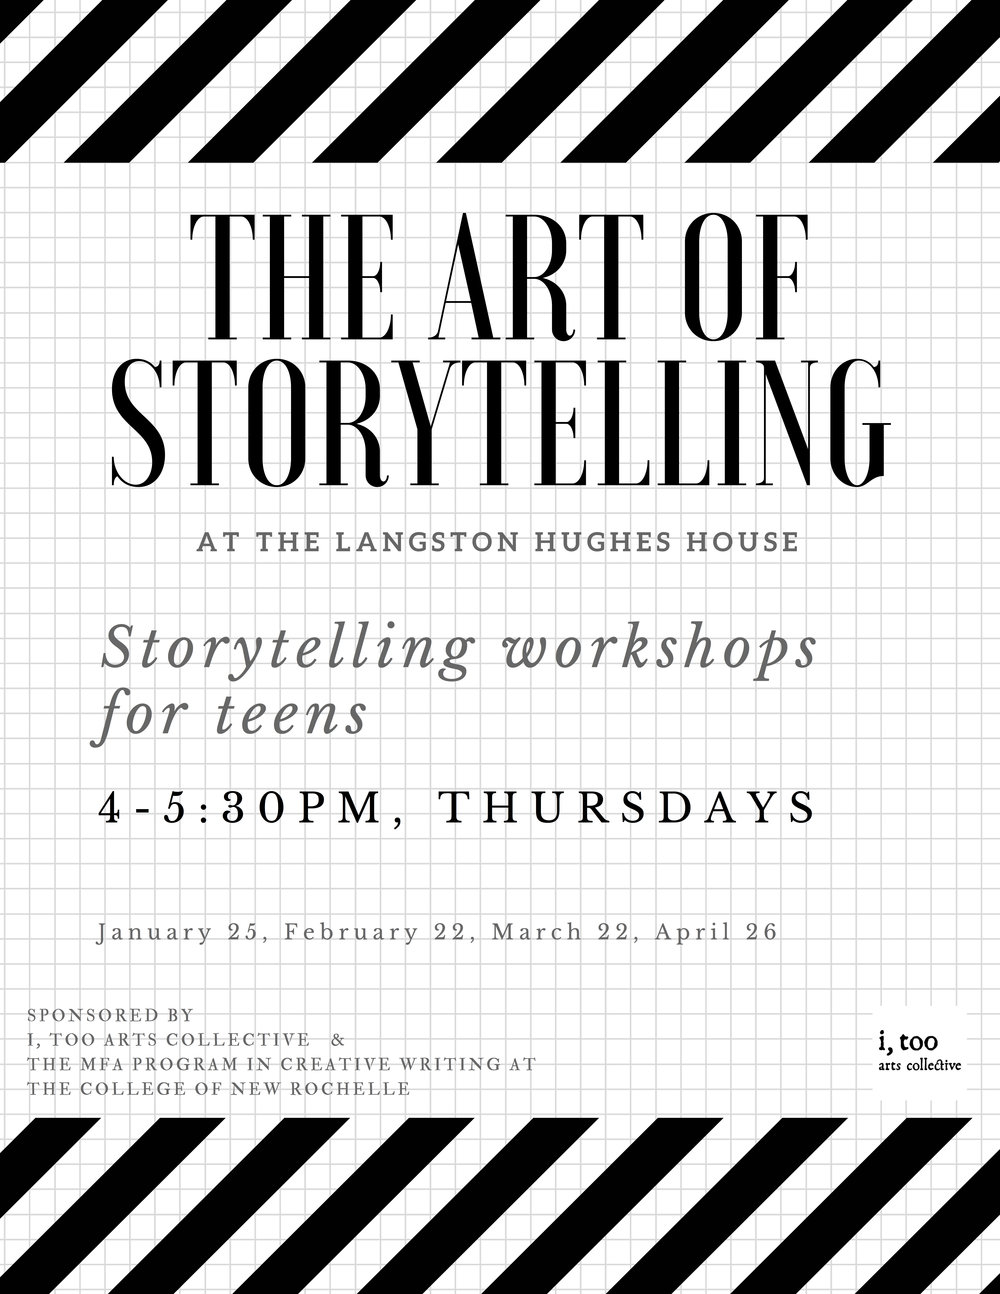 Copy of THe Art of Storytelling copy (2).jpg